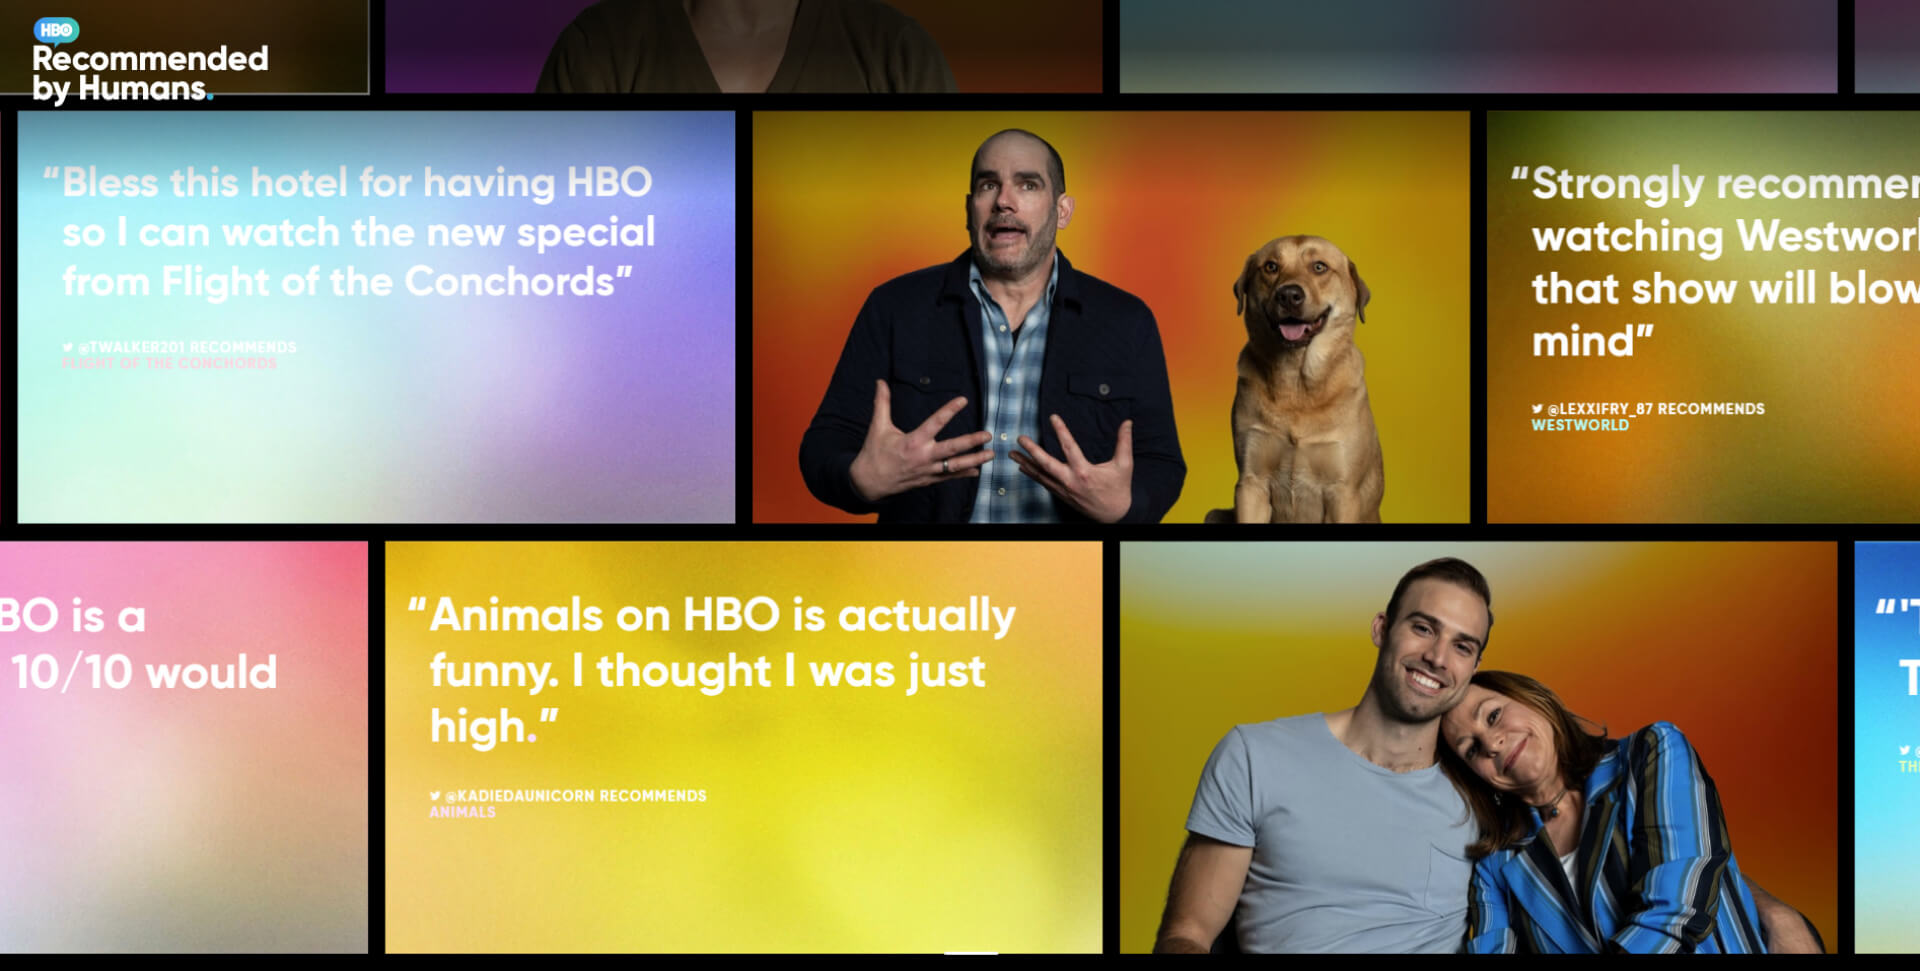 HBO launches a 'Recommended by Humans' website to give a taster of its praised shows